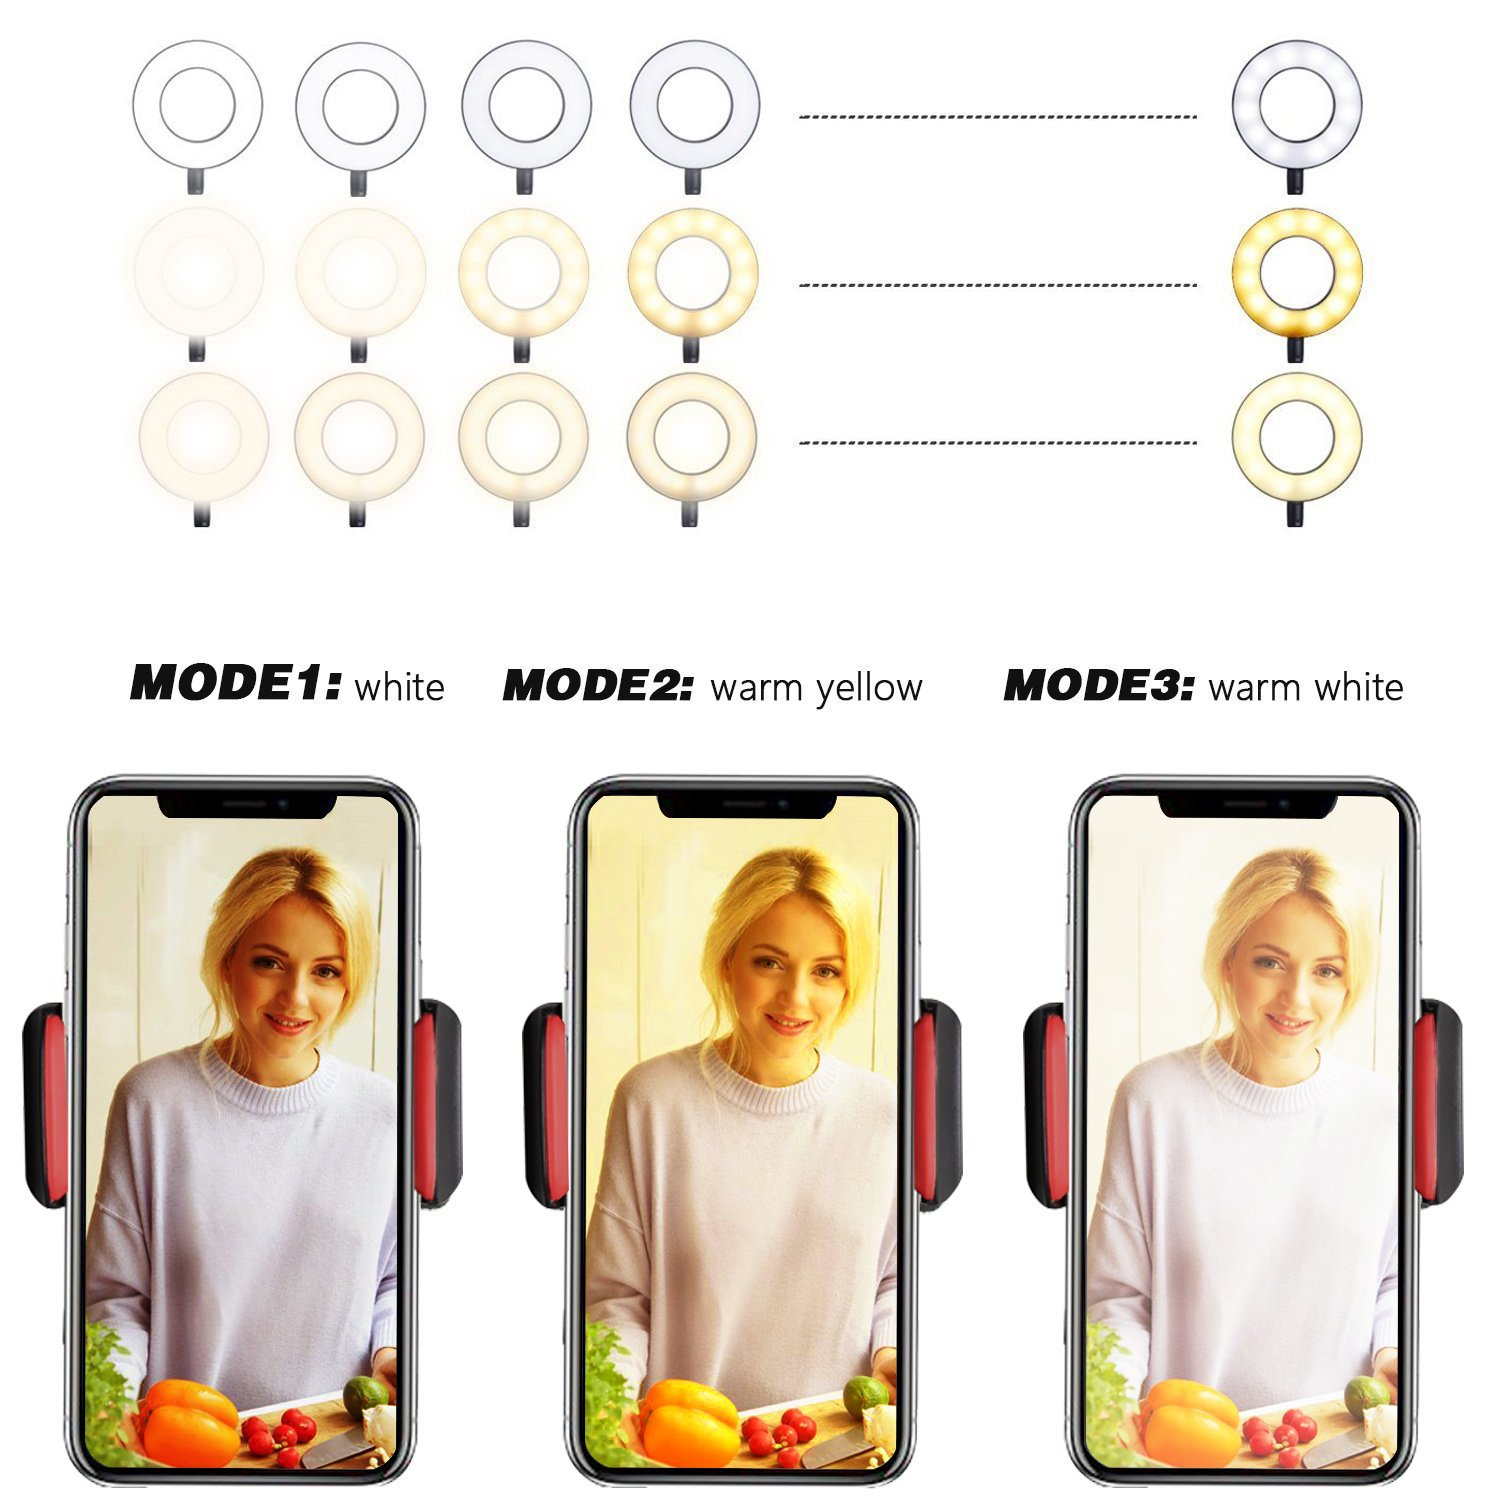 Selfie Ring Light with Cell Phone Holder Stand for Live Stream/Makeup, UBeesize LED Camera Lighting [3-Light Mode] [10-Level Brightness] with Flexible Arms Compatible with iPhone 8 7 6 Plus X Android by UBeesize (Image #3)